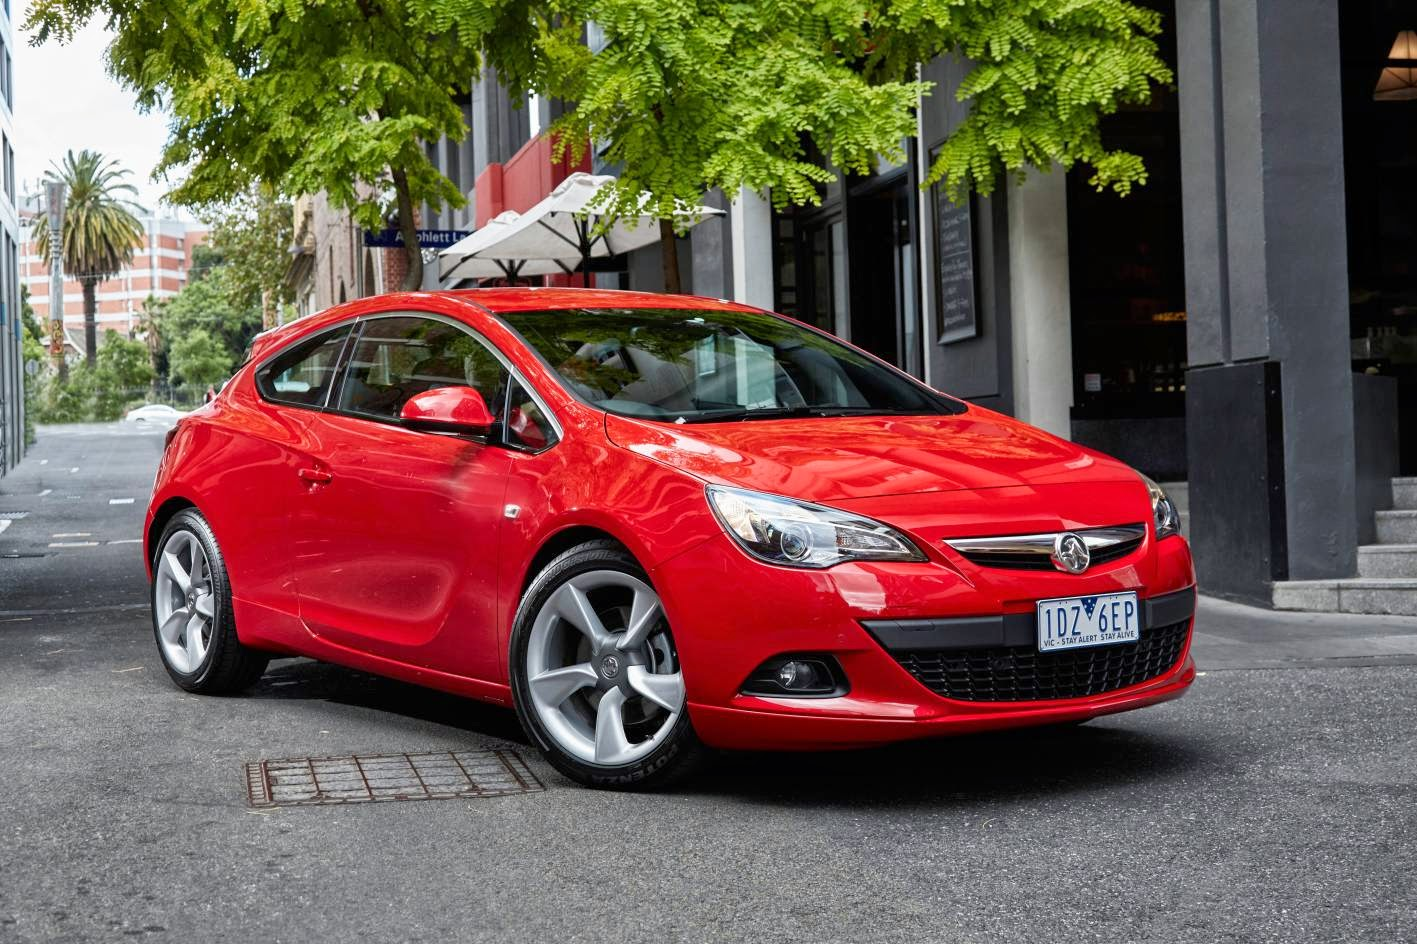 Stylish new Holden Astra GTC in Australia